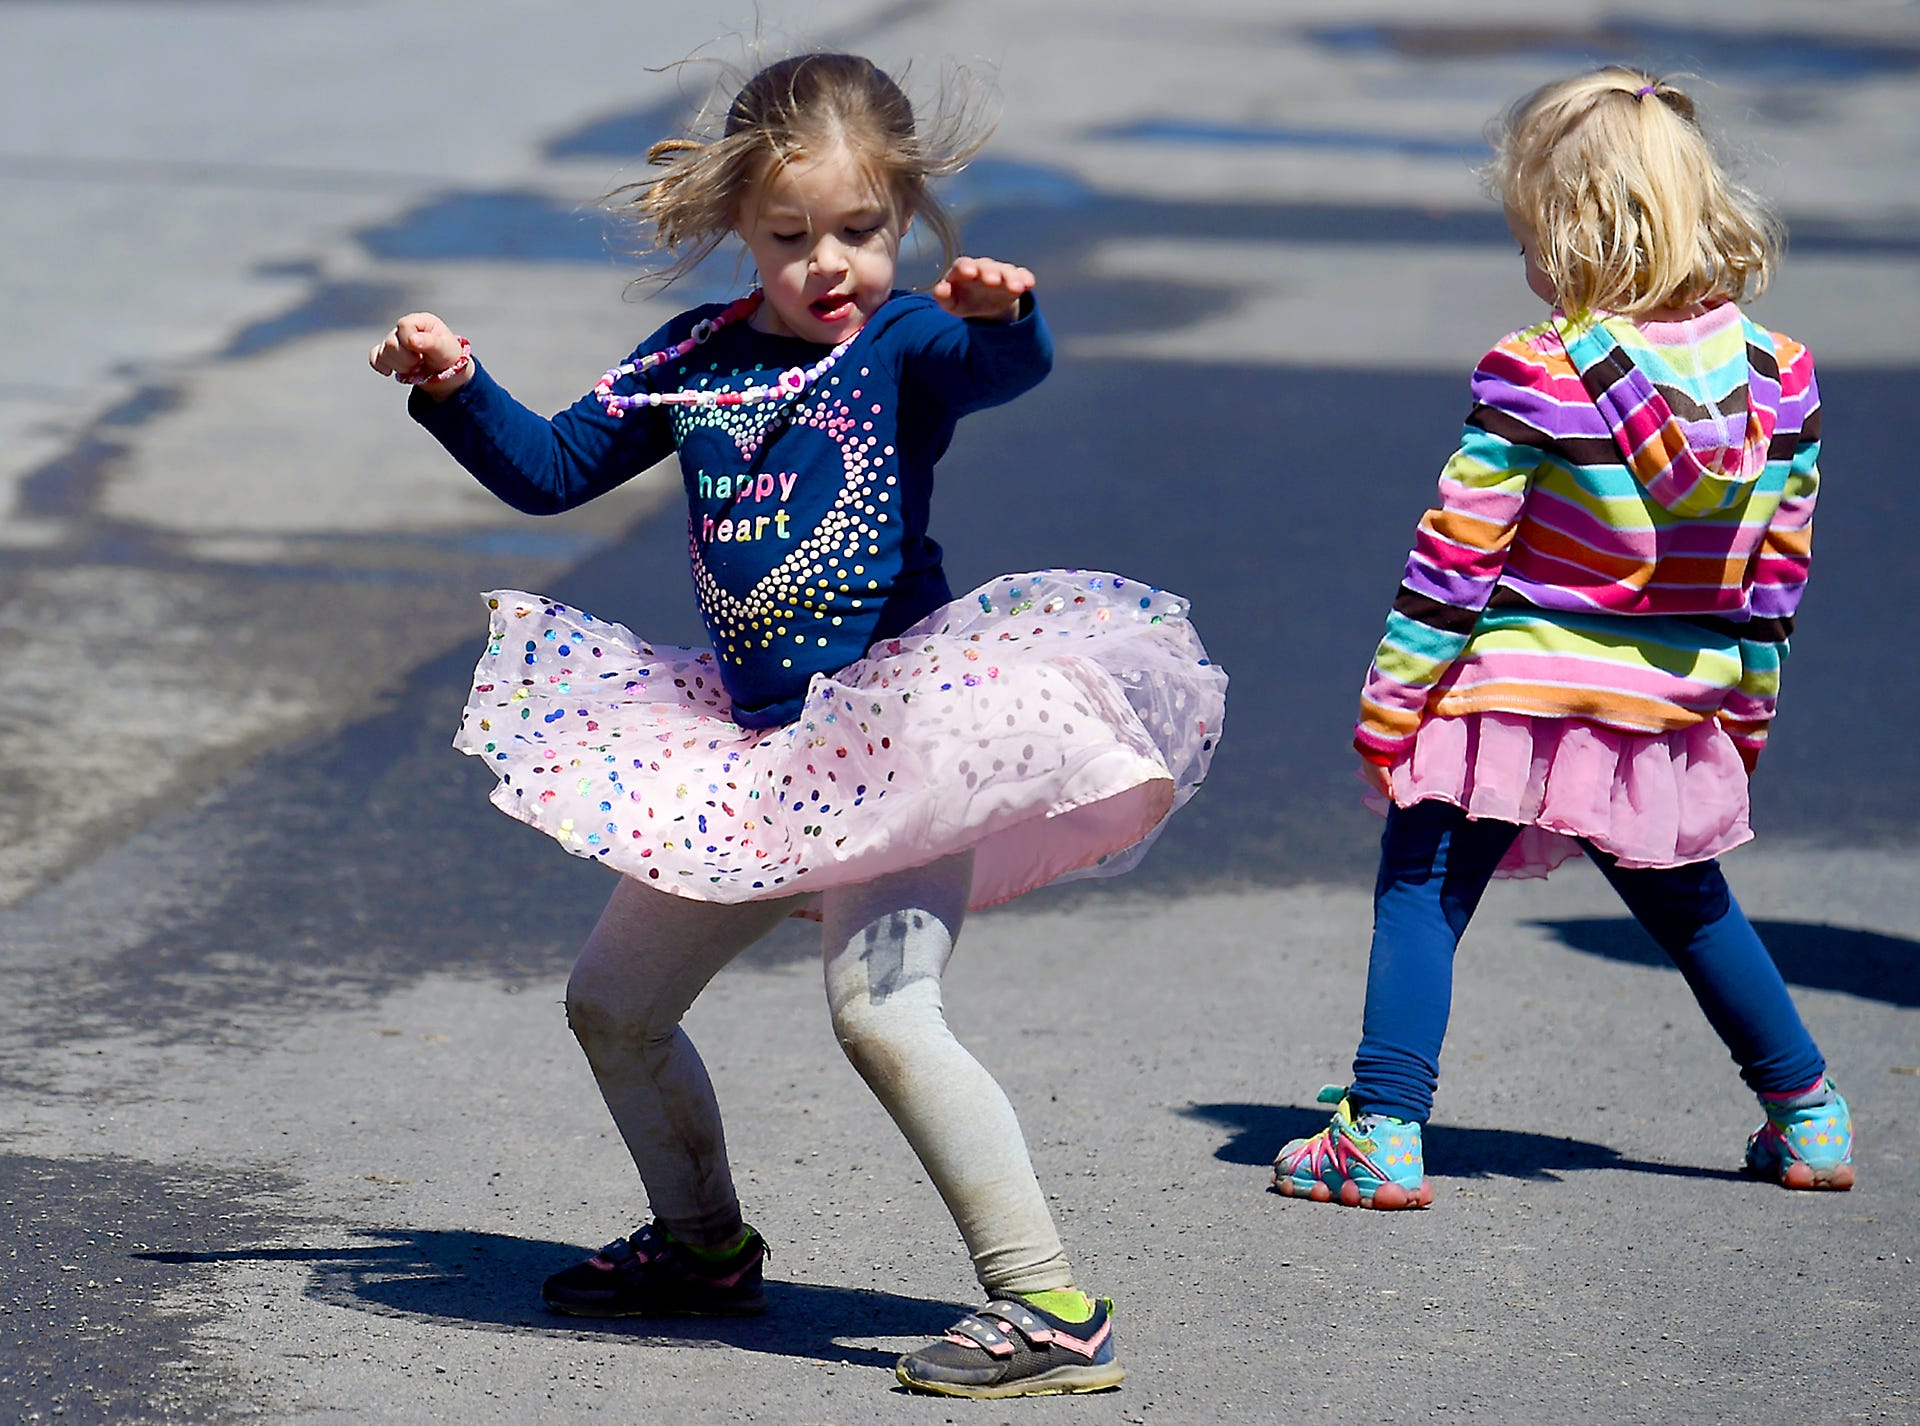 2018: Sophie Mallow, left, and Amelia O'Dell Welling, right, dance during the Tough Turtle, an annual obstacle course fun run to benefit Ithaca's Children's Garden, held on Saturday at the Cayuga Waterfront and Black Diamond Trails.